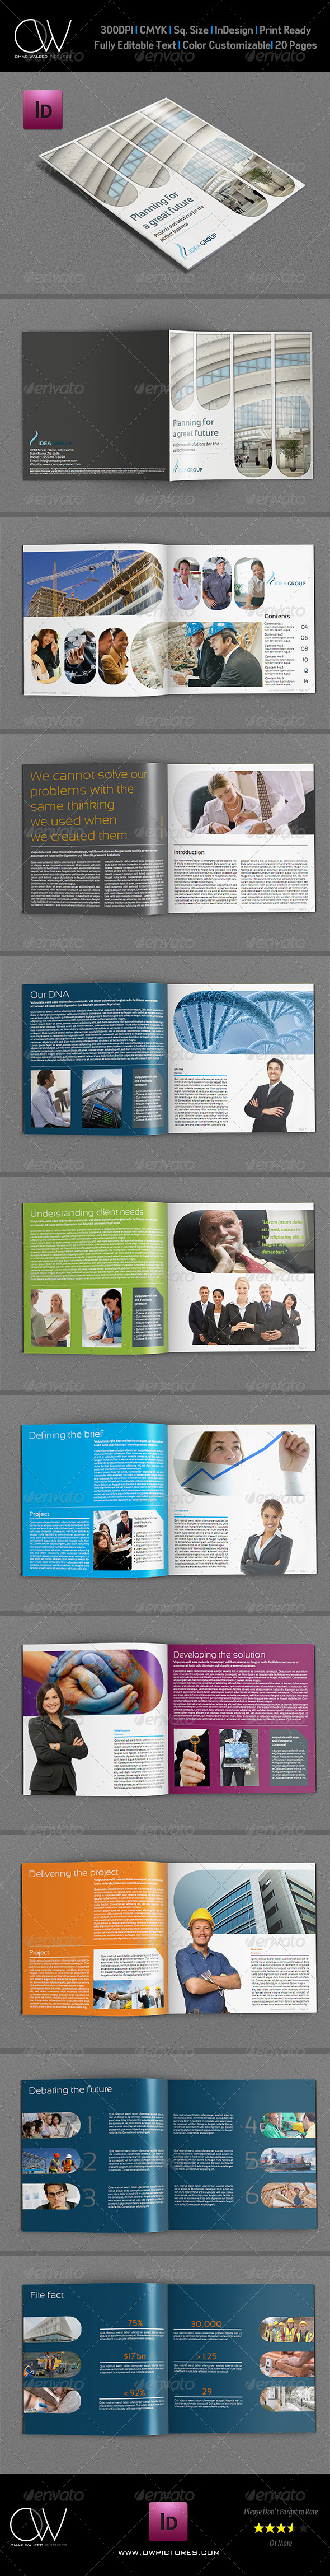 Company Brochure Template Vol.10 - 20 Pages - Corporate Brochures